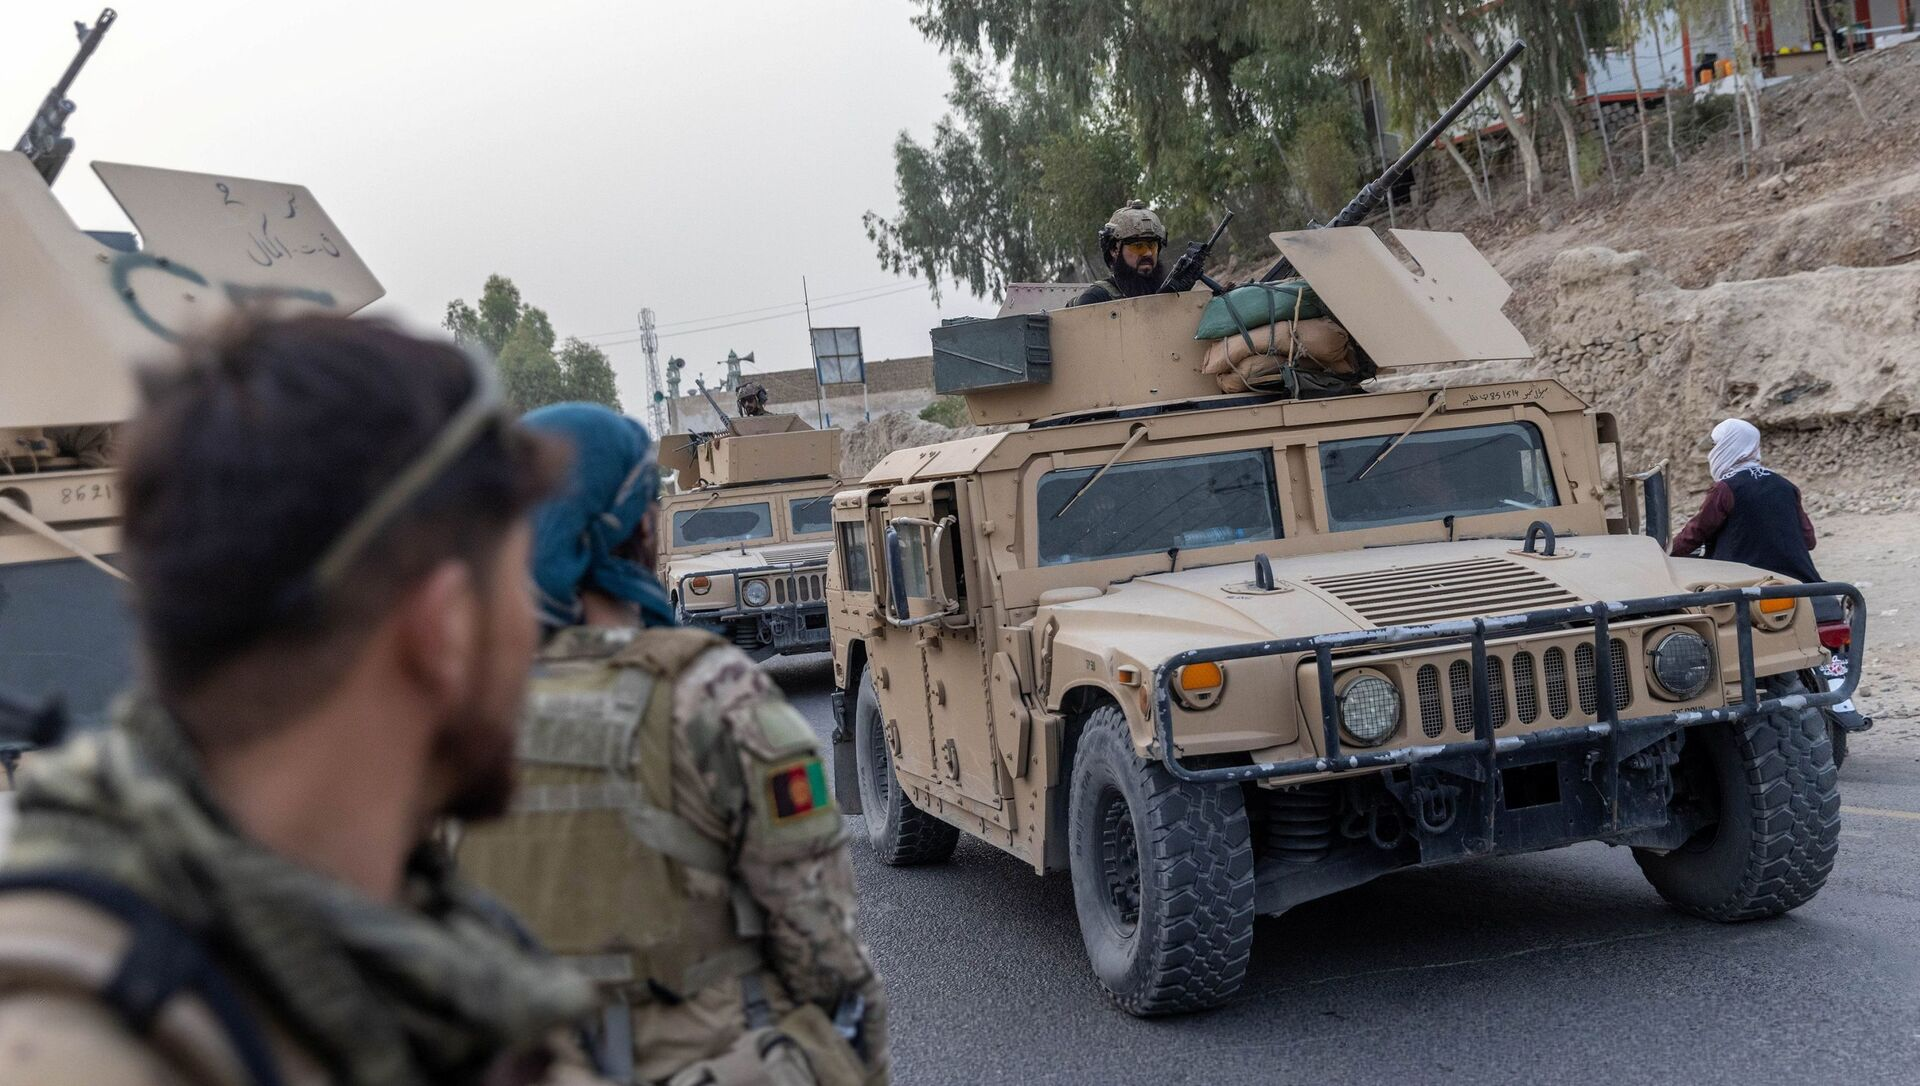 A convoy of Afghan Special Forces is seen during the rescue mission of a police officer besieged at a check post surrounded by Taliban, in Kandahar province, Afghanistan, July 13, 2021. REUTERS/Danish Siddiqui - Sputnik International, 1920, 03.08.2021